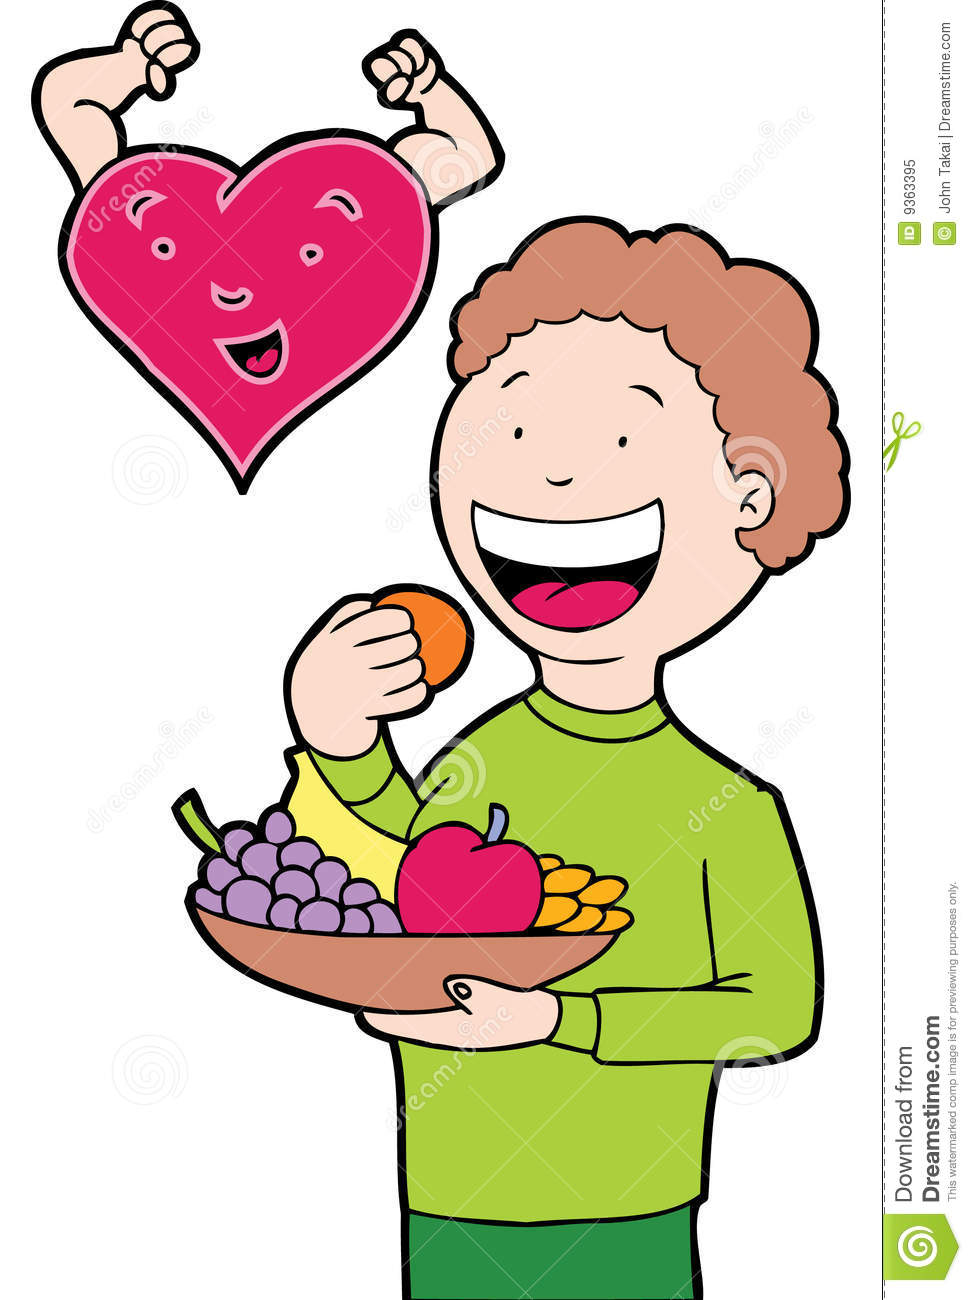 Fit and healthy clipart clipart freeuse download Clipart healthy child - ClipartFest clipart freeuse download